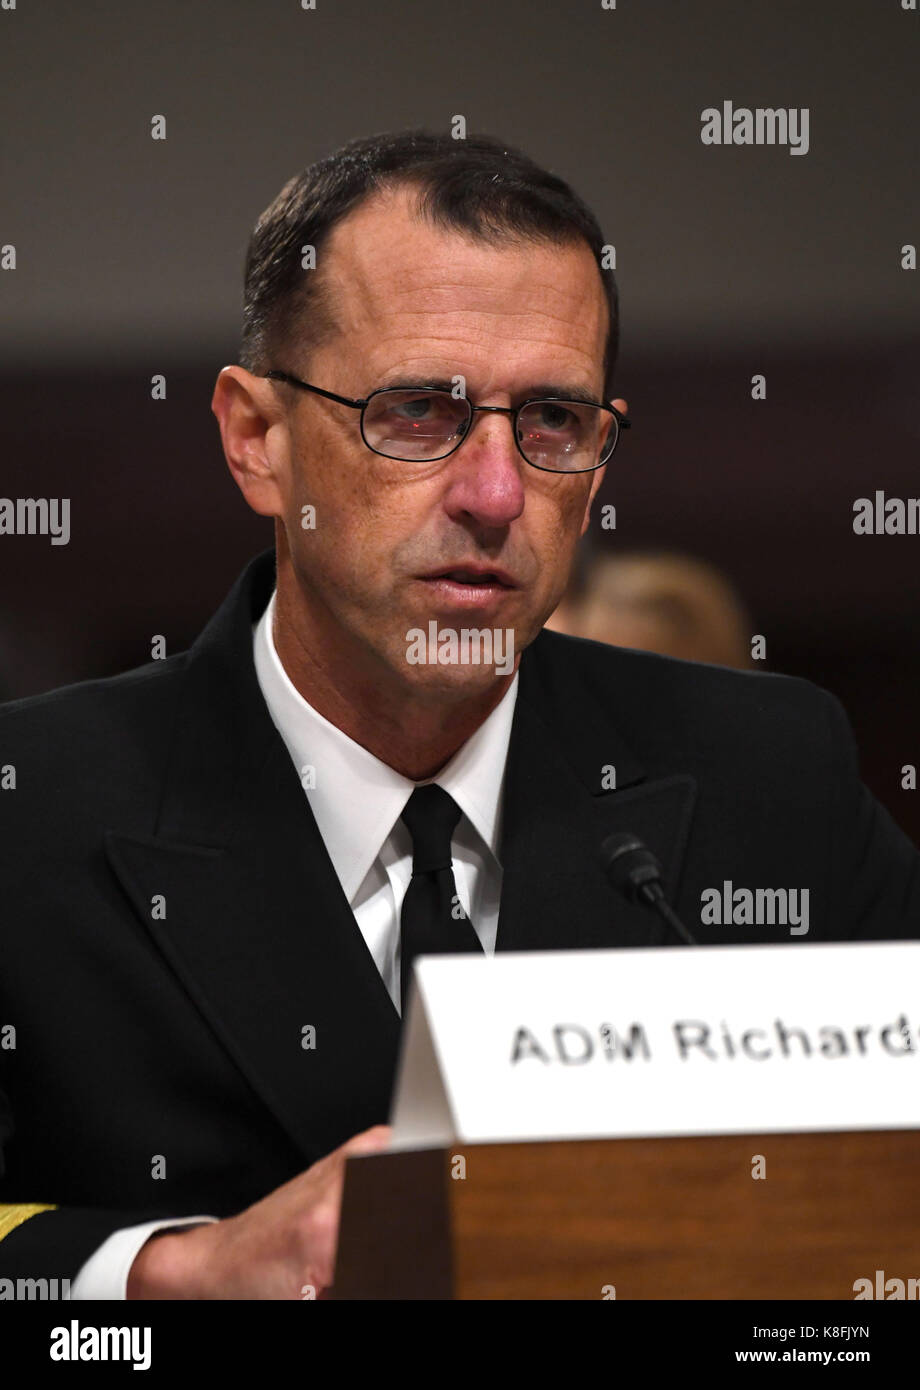 Washington, USA. 19th Sep, 2017. Chief of Naval Operations Admiral John Richardson testifies during a hearing on recent U.S. Navy incidents before Senate Armed Services Committee on Capitol in Washington, DC, the United States, on Sept. 19, 2017. Top leaders of the U.S. Navy were urged to do better on Tuesday as they appeared before the Senate hearing over a series of deadly ship collisions involving the Pacific fleet. Credit: Yin Bogu/Xinhua/Alamy Live News Stock Photo